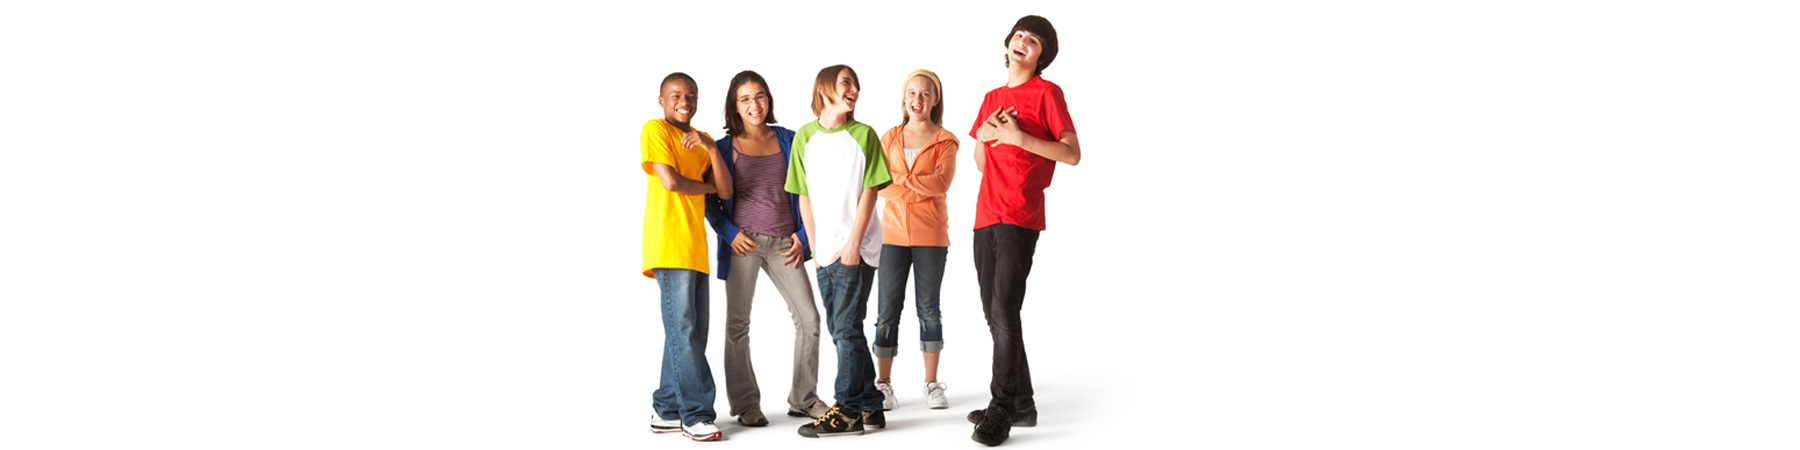 Group-of-Teens